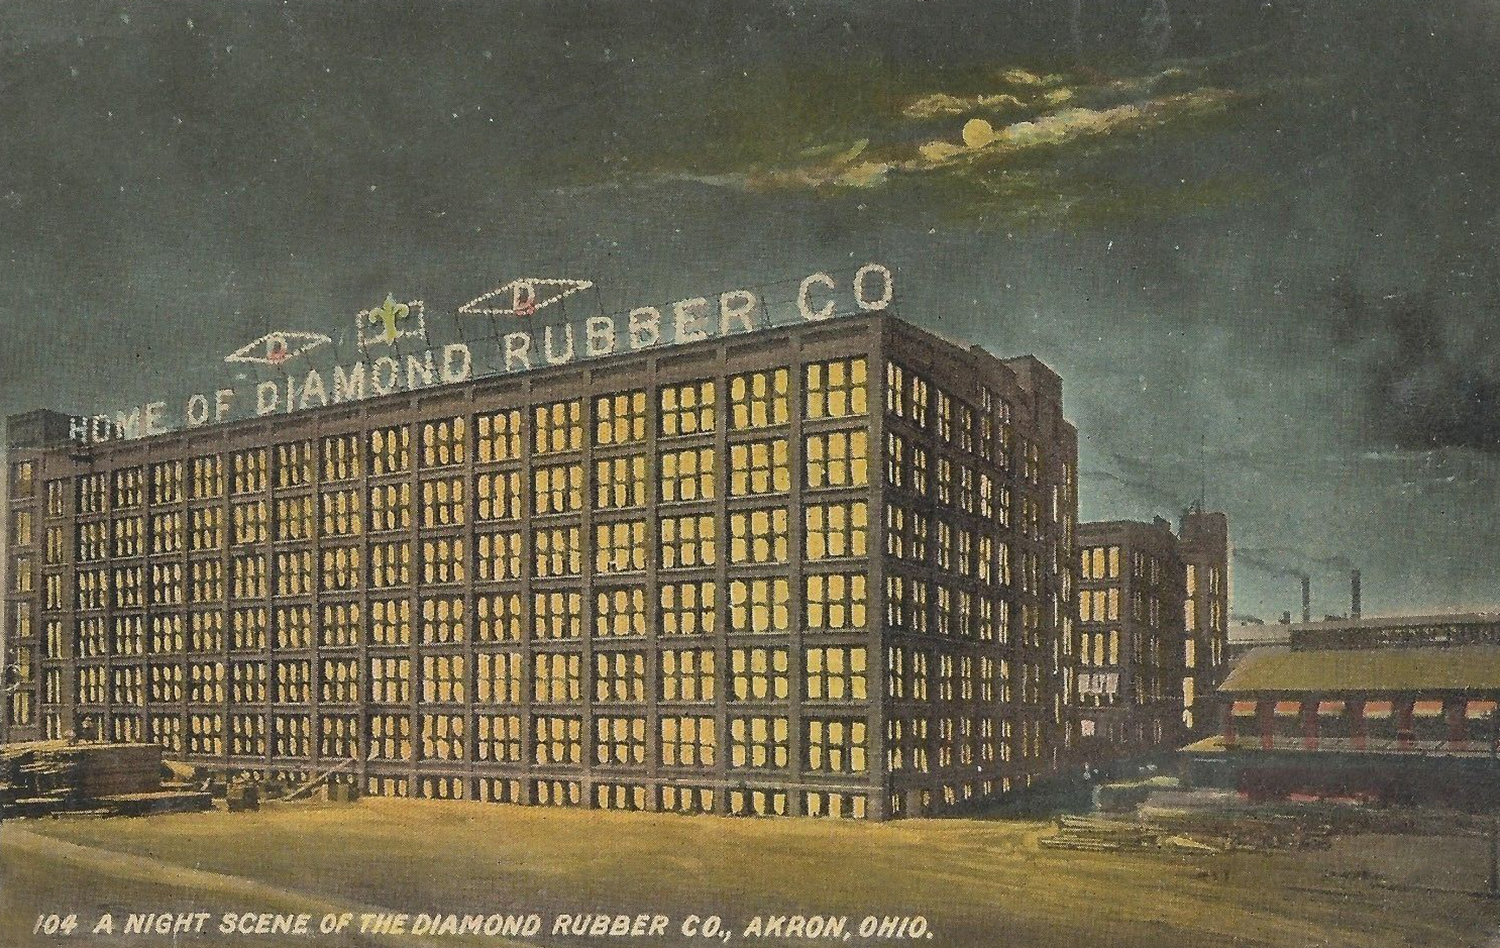 A night scene of the Diamond Rubber Company, Akron, Ohio